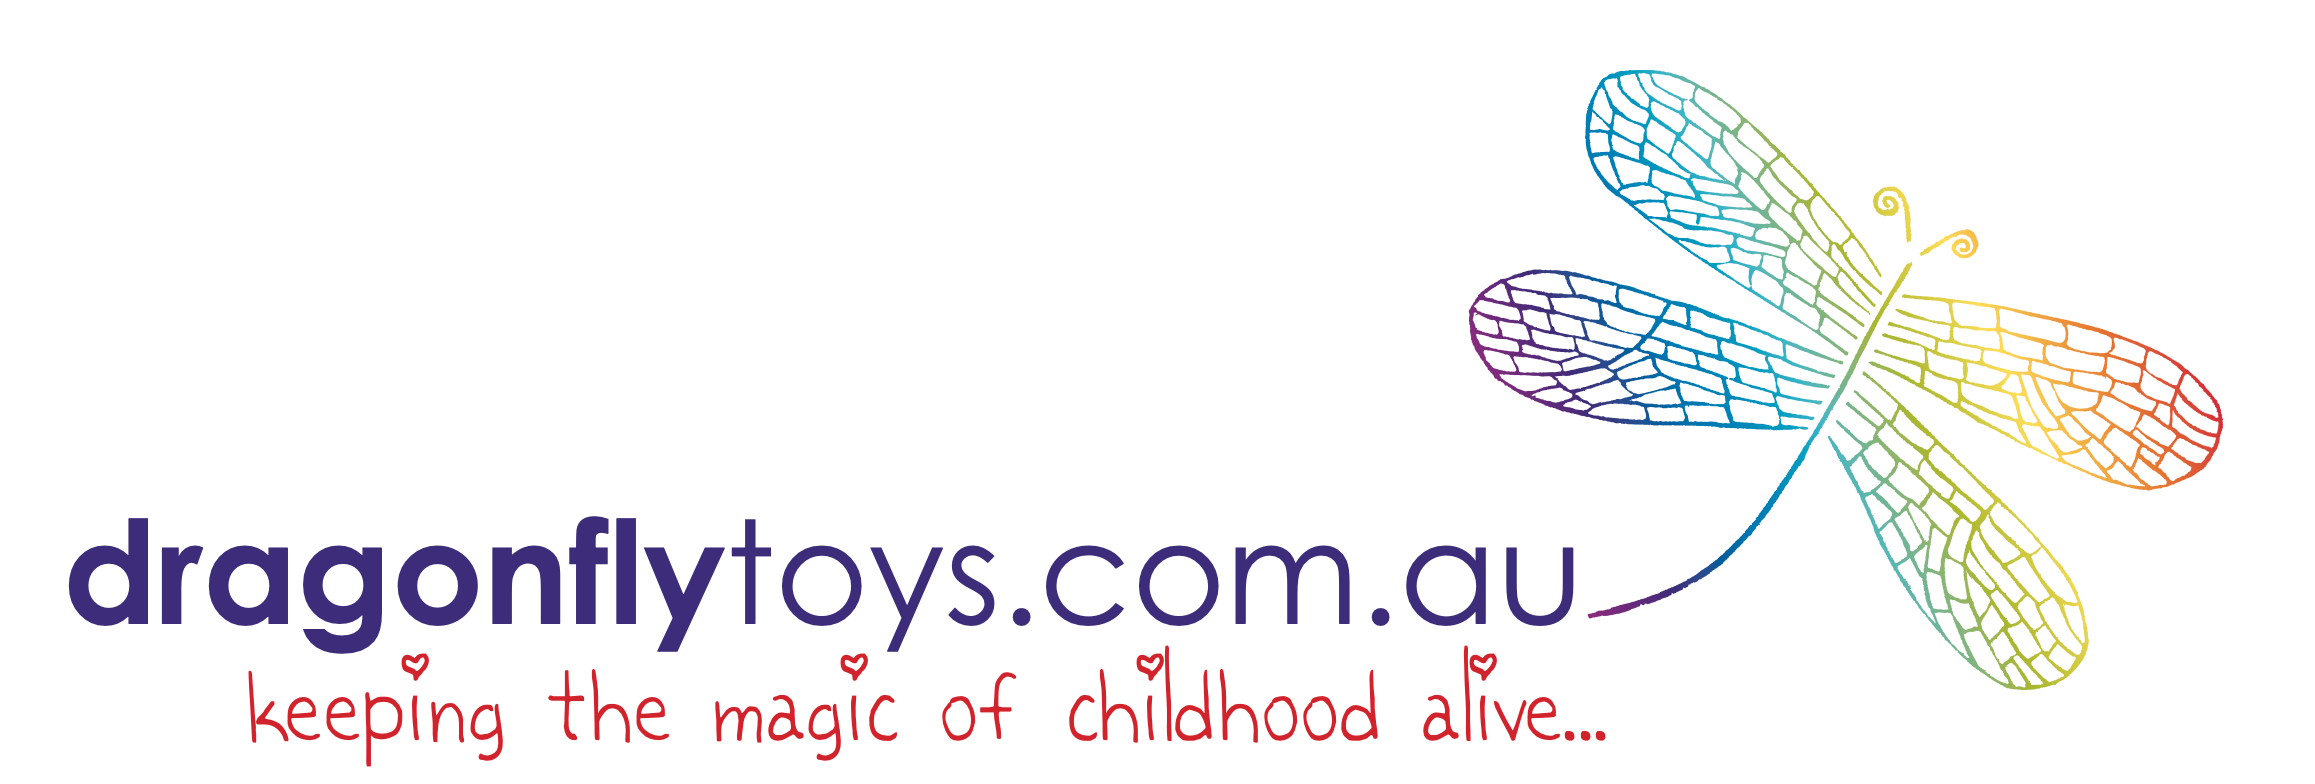 Our Partners - Dragonfly Toys - OLA - Organisational Learning